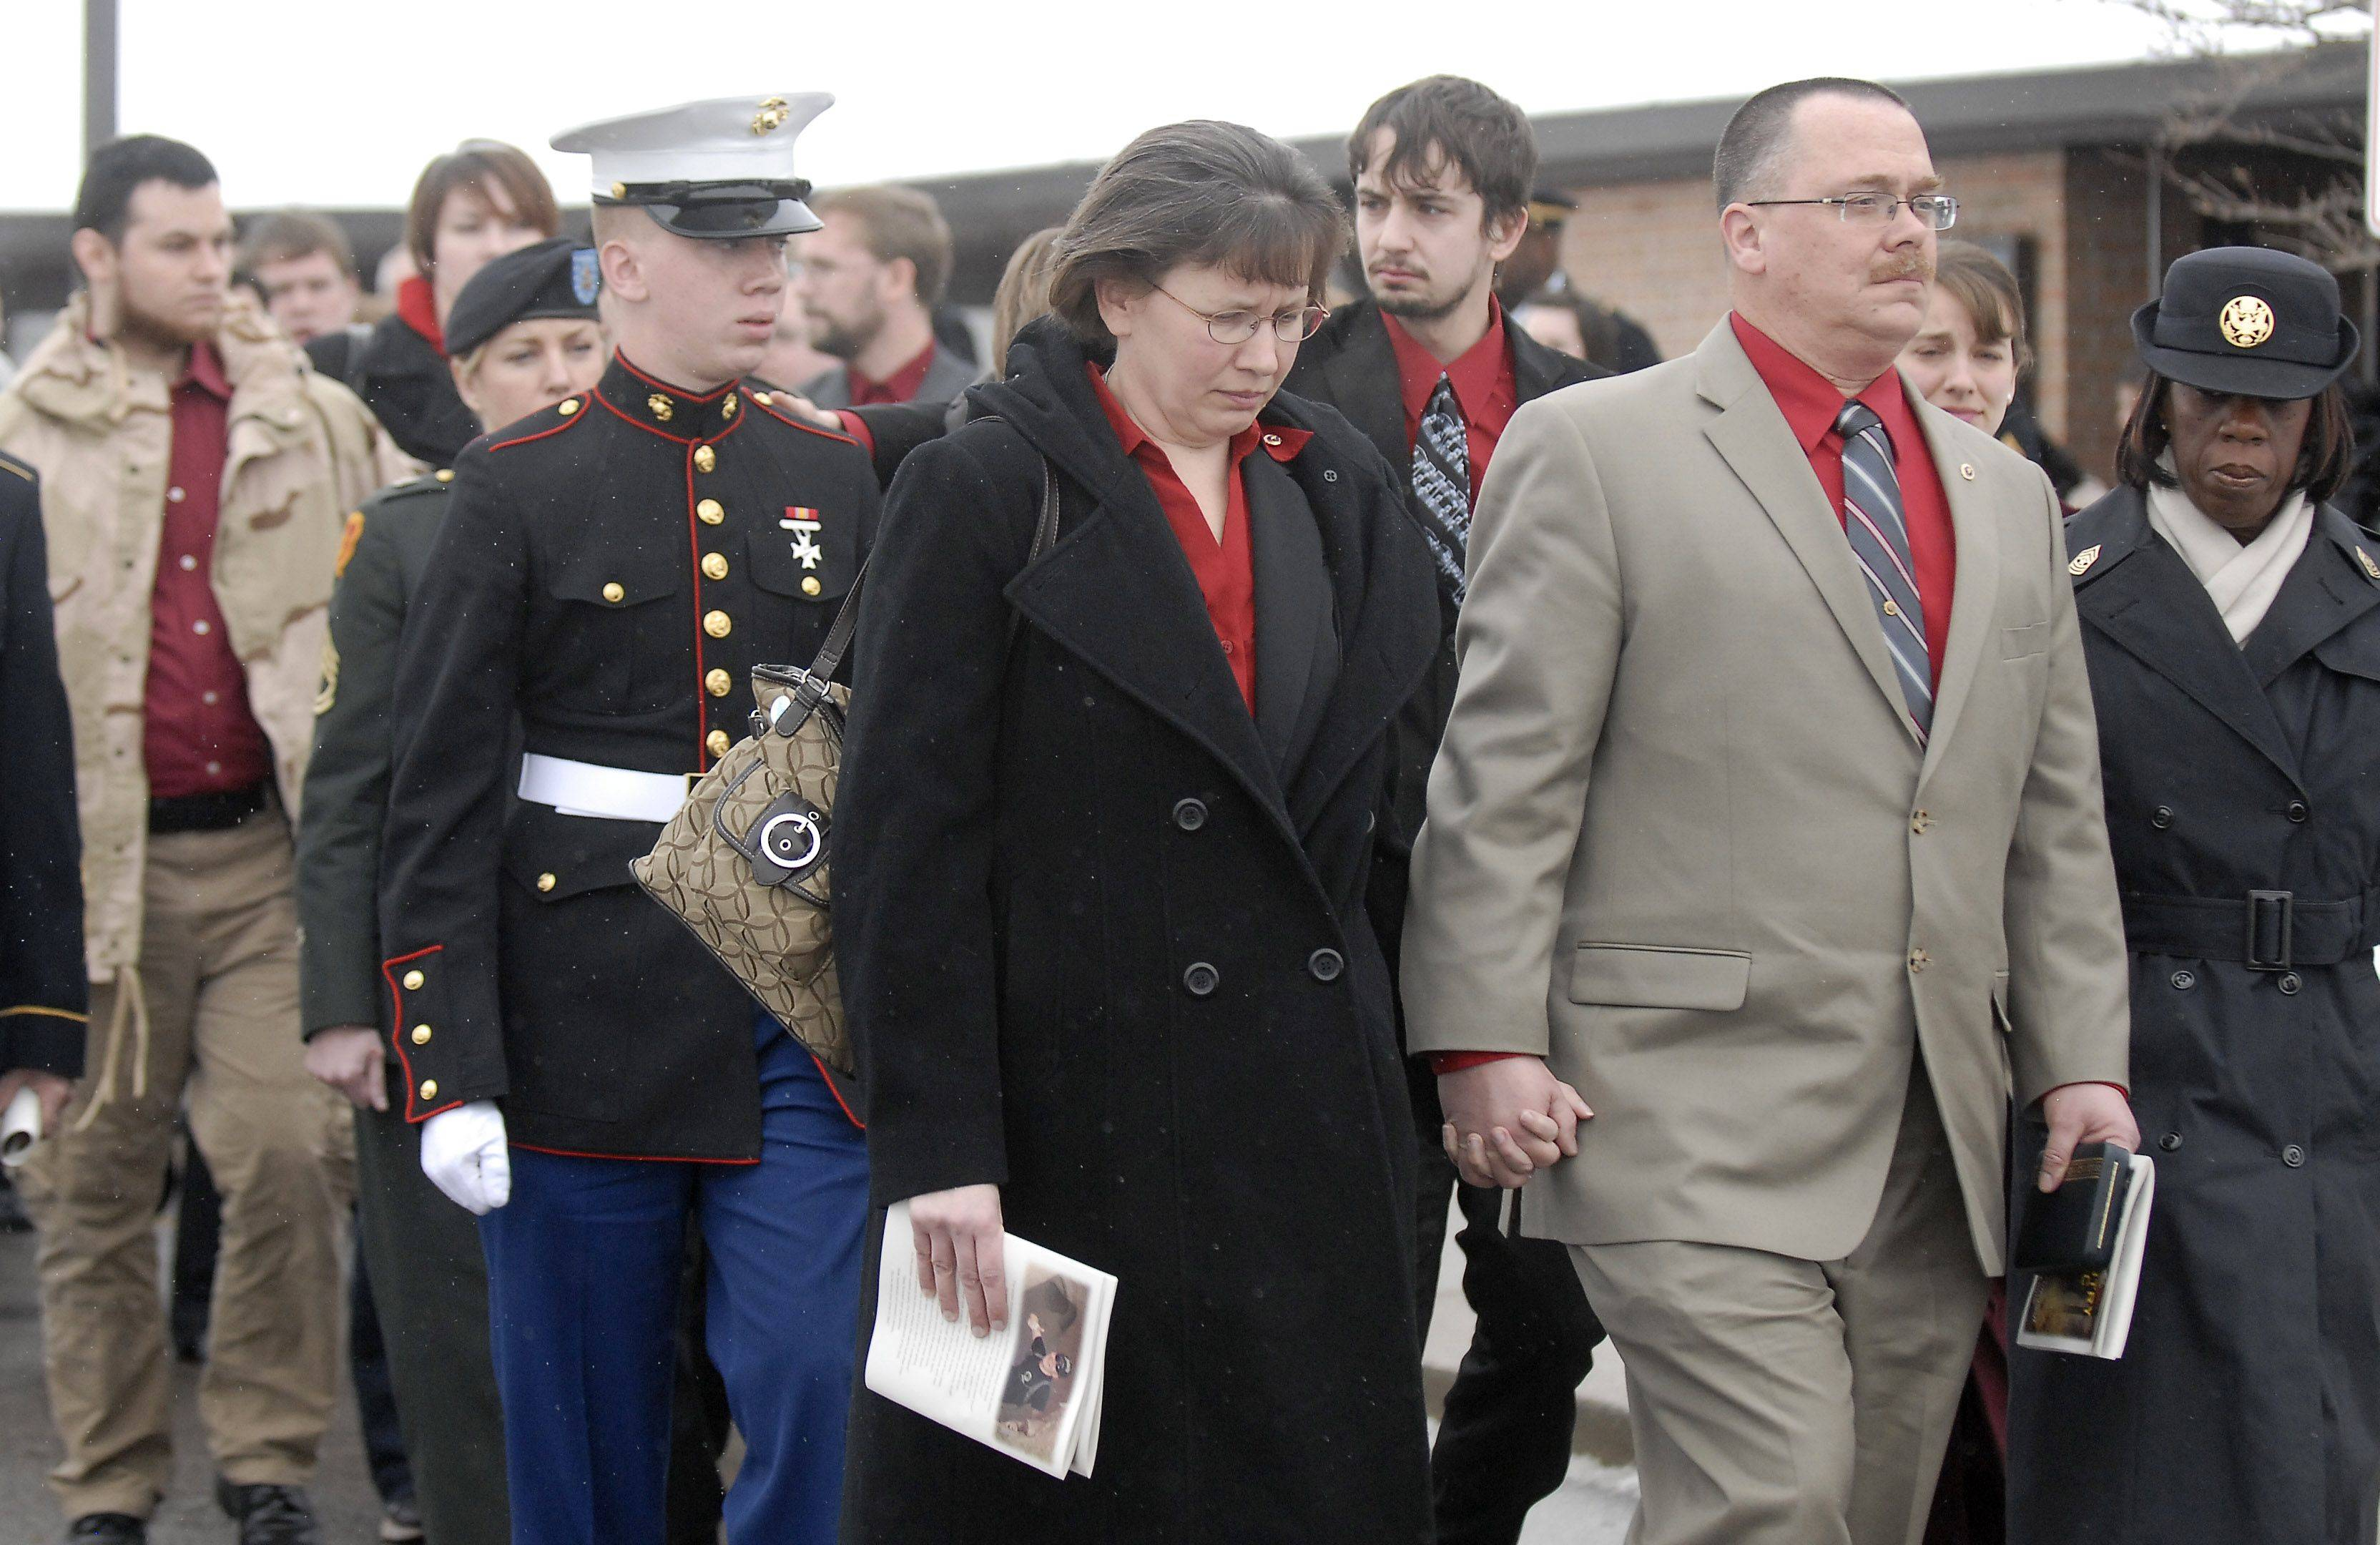 Mary and Bob Patterson walk behind the casket of their son, Spc. Christopher A. Patterson, along with another son, Carl, as they head outside for full military honors at his funeral. Patterson was a member of the 713th Engineer Company of the Indiana National Guard.